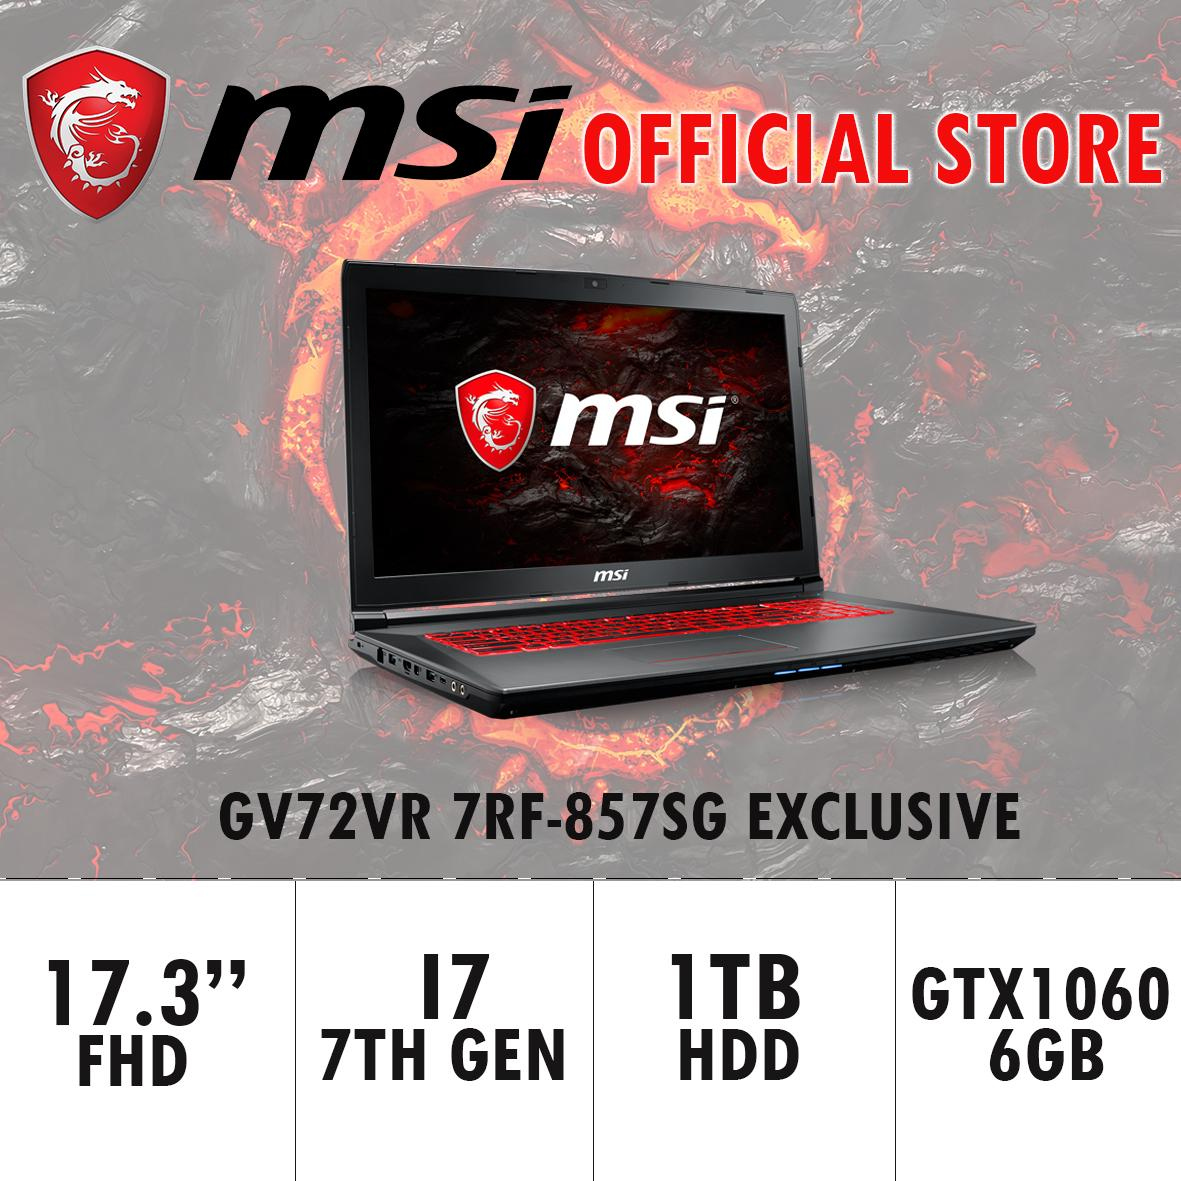 Latest Msi Laptops Products Enjoy Huge Discounts Lazada Sg Gt72s 6qf Dominator Pro G Gaming Laptop Dragon Edition Gv72vr 7rf 857sg Exclusive I7 7700hq 8gb Ddr4 128gb Ssd